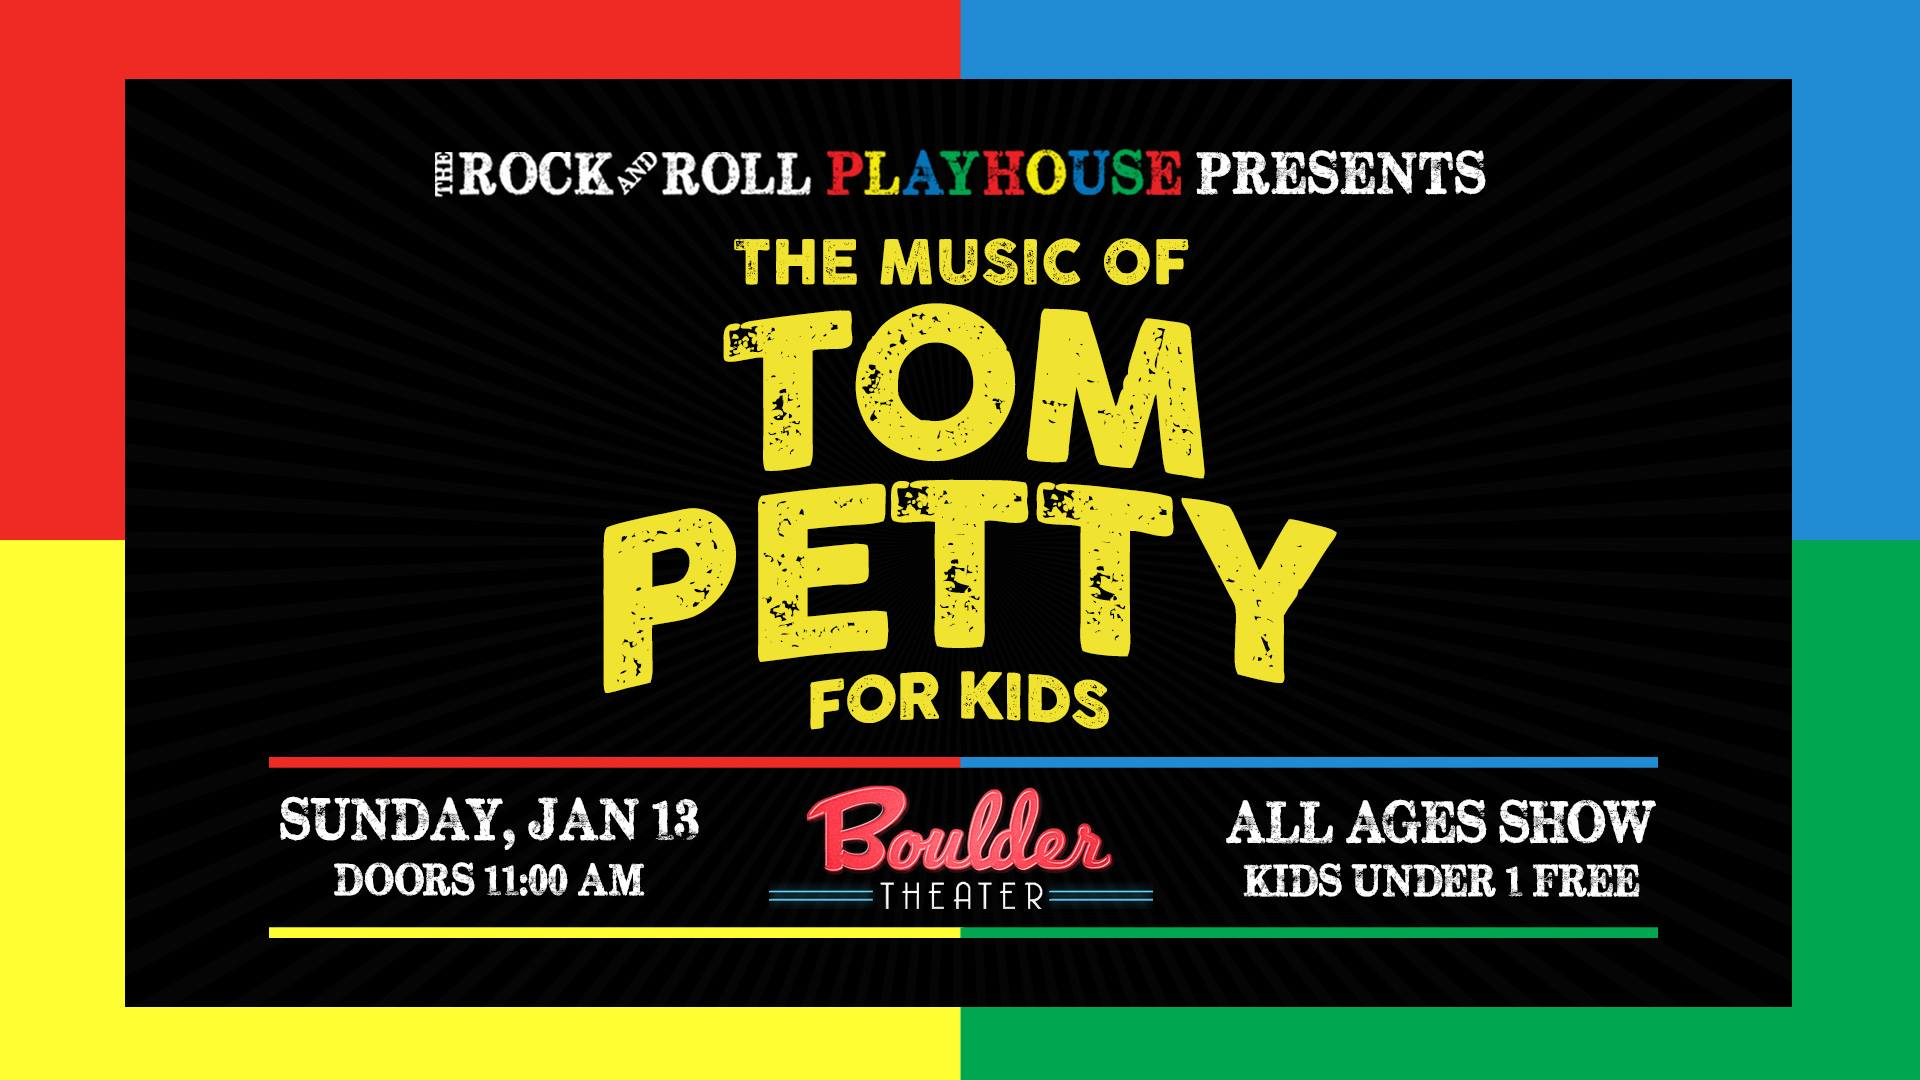 The Music of Tom Petty for Kids @ Boulder Theater | 1/13/19